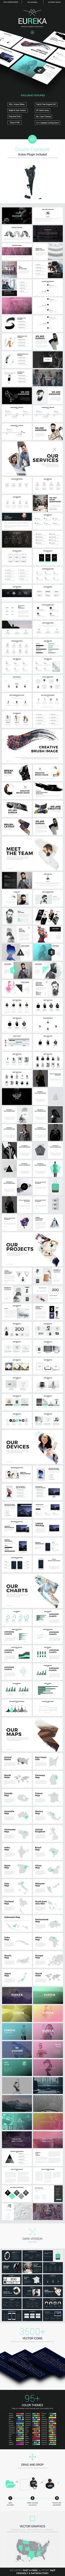 If you are looking to make a strong professional impact, go with this Modern Minimalist Powerpoint Template. It has a very clean, formal look that is perfect for your next big presentation.